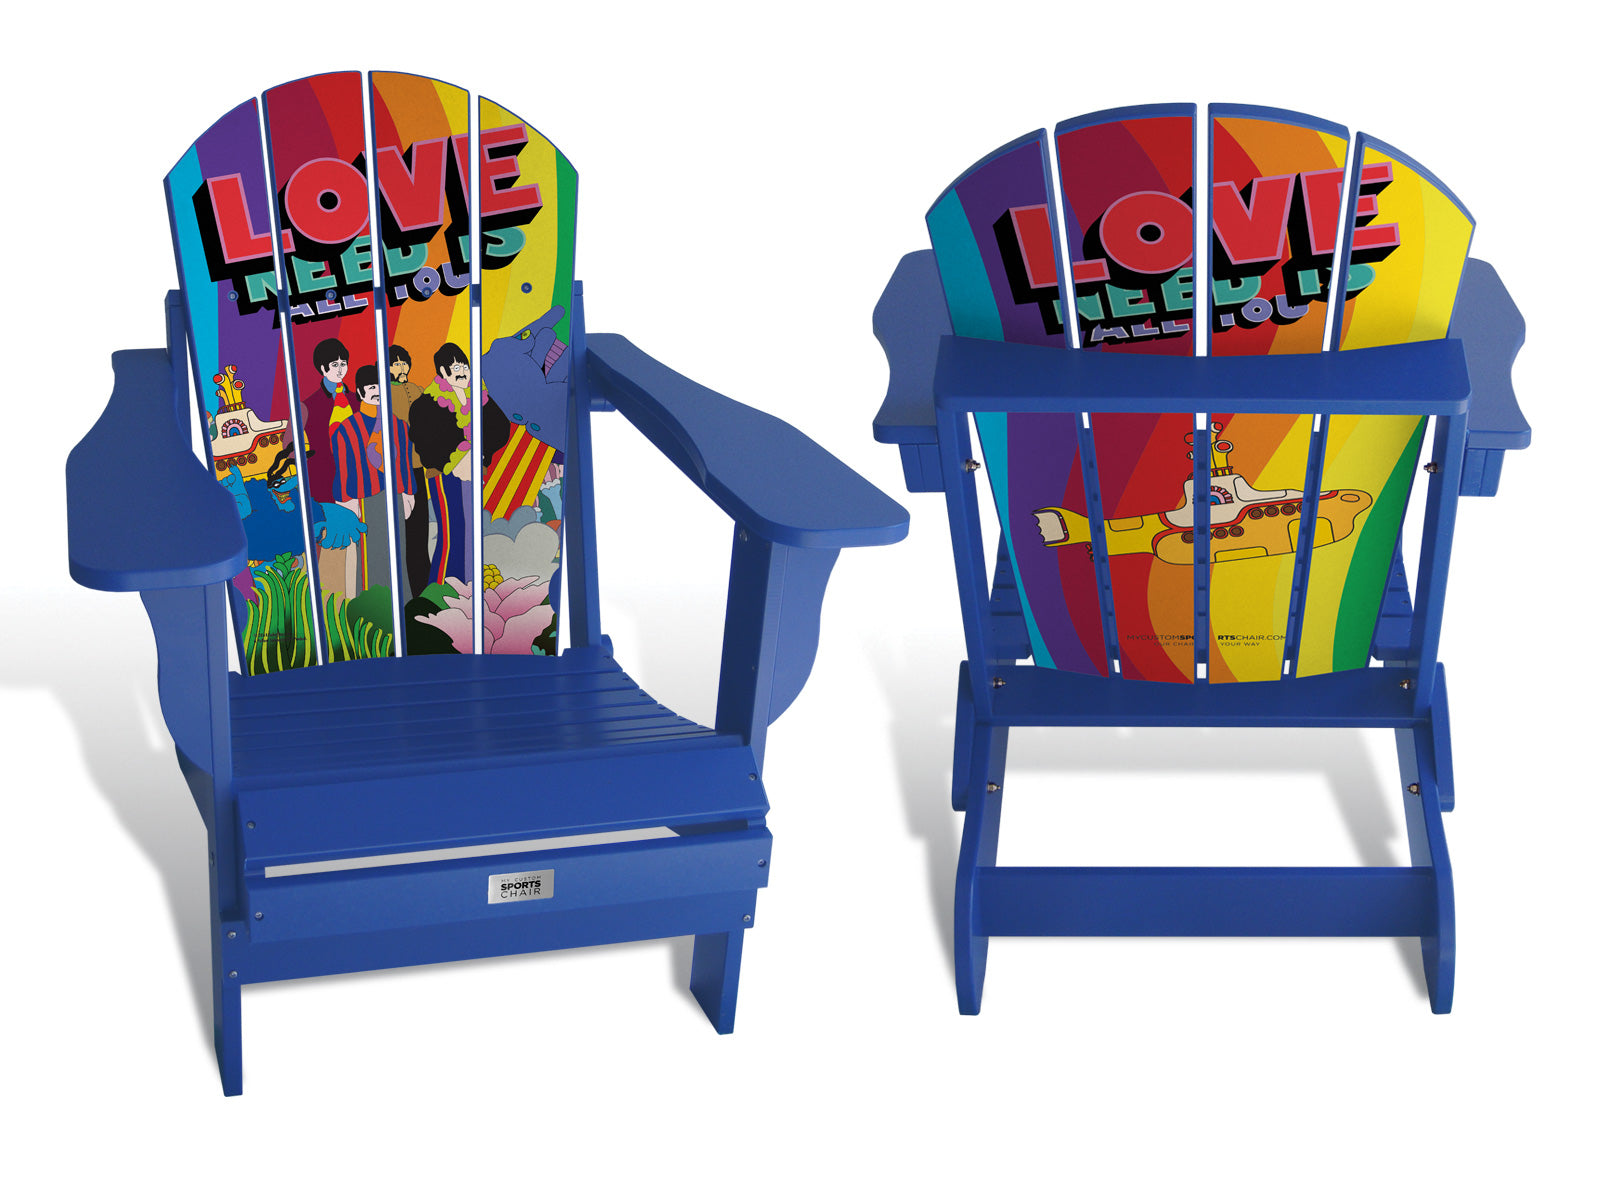 All You Need Is Love - Custom Sports Chair - The Beatles & Apple Corp